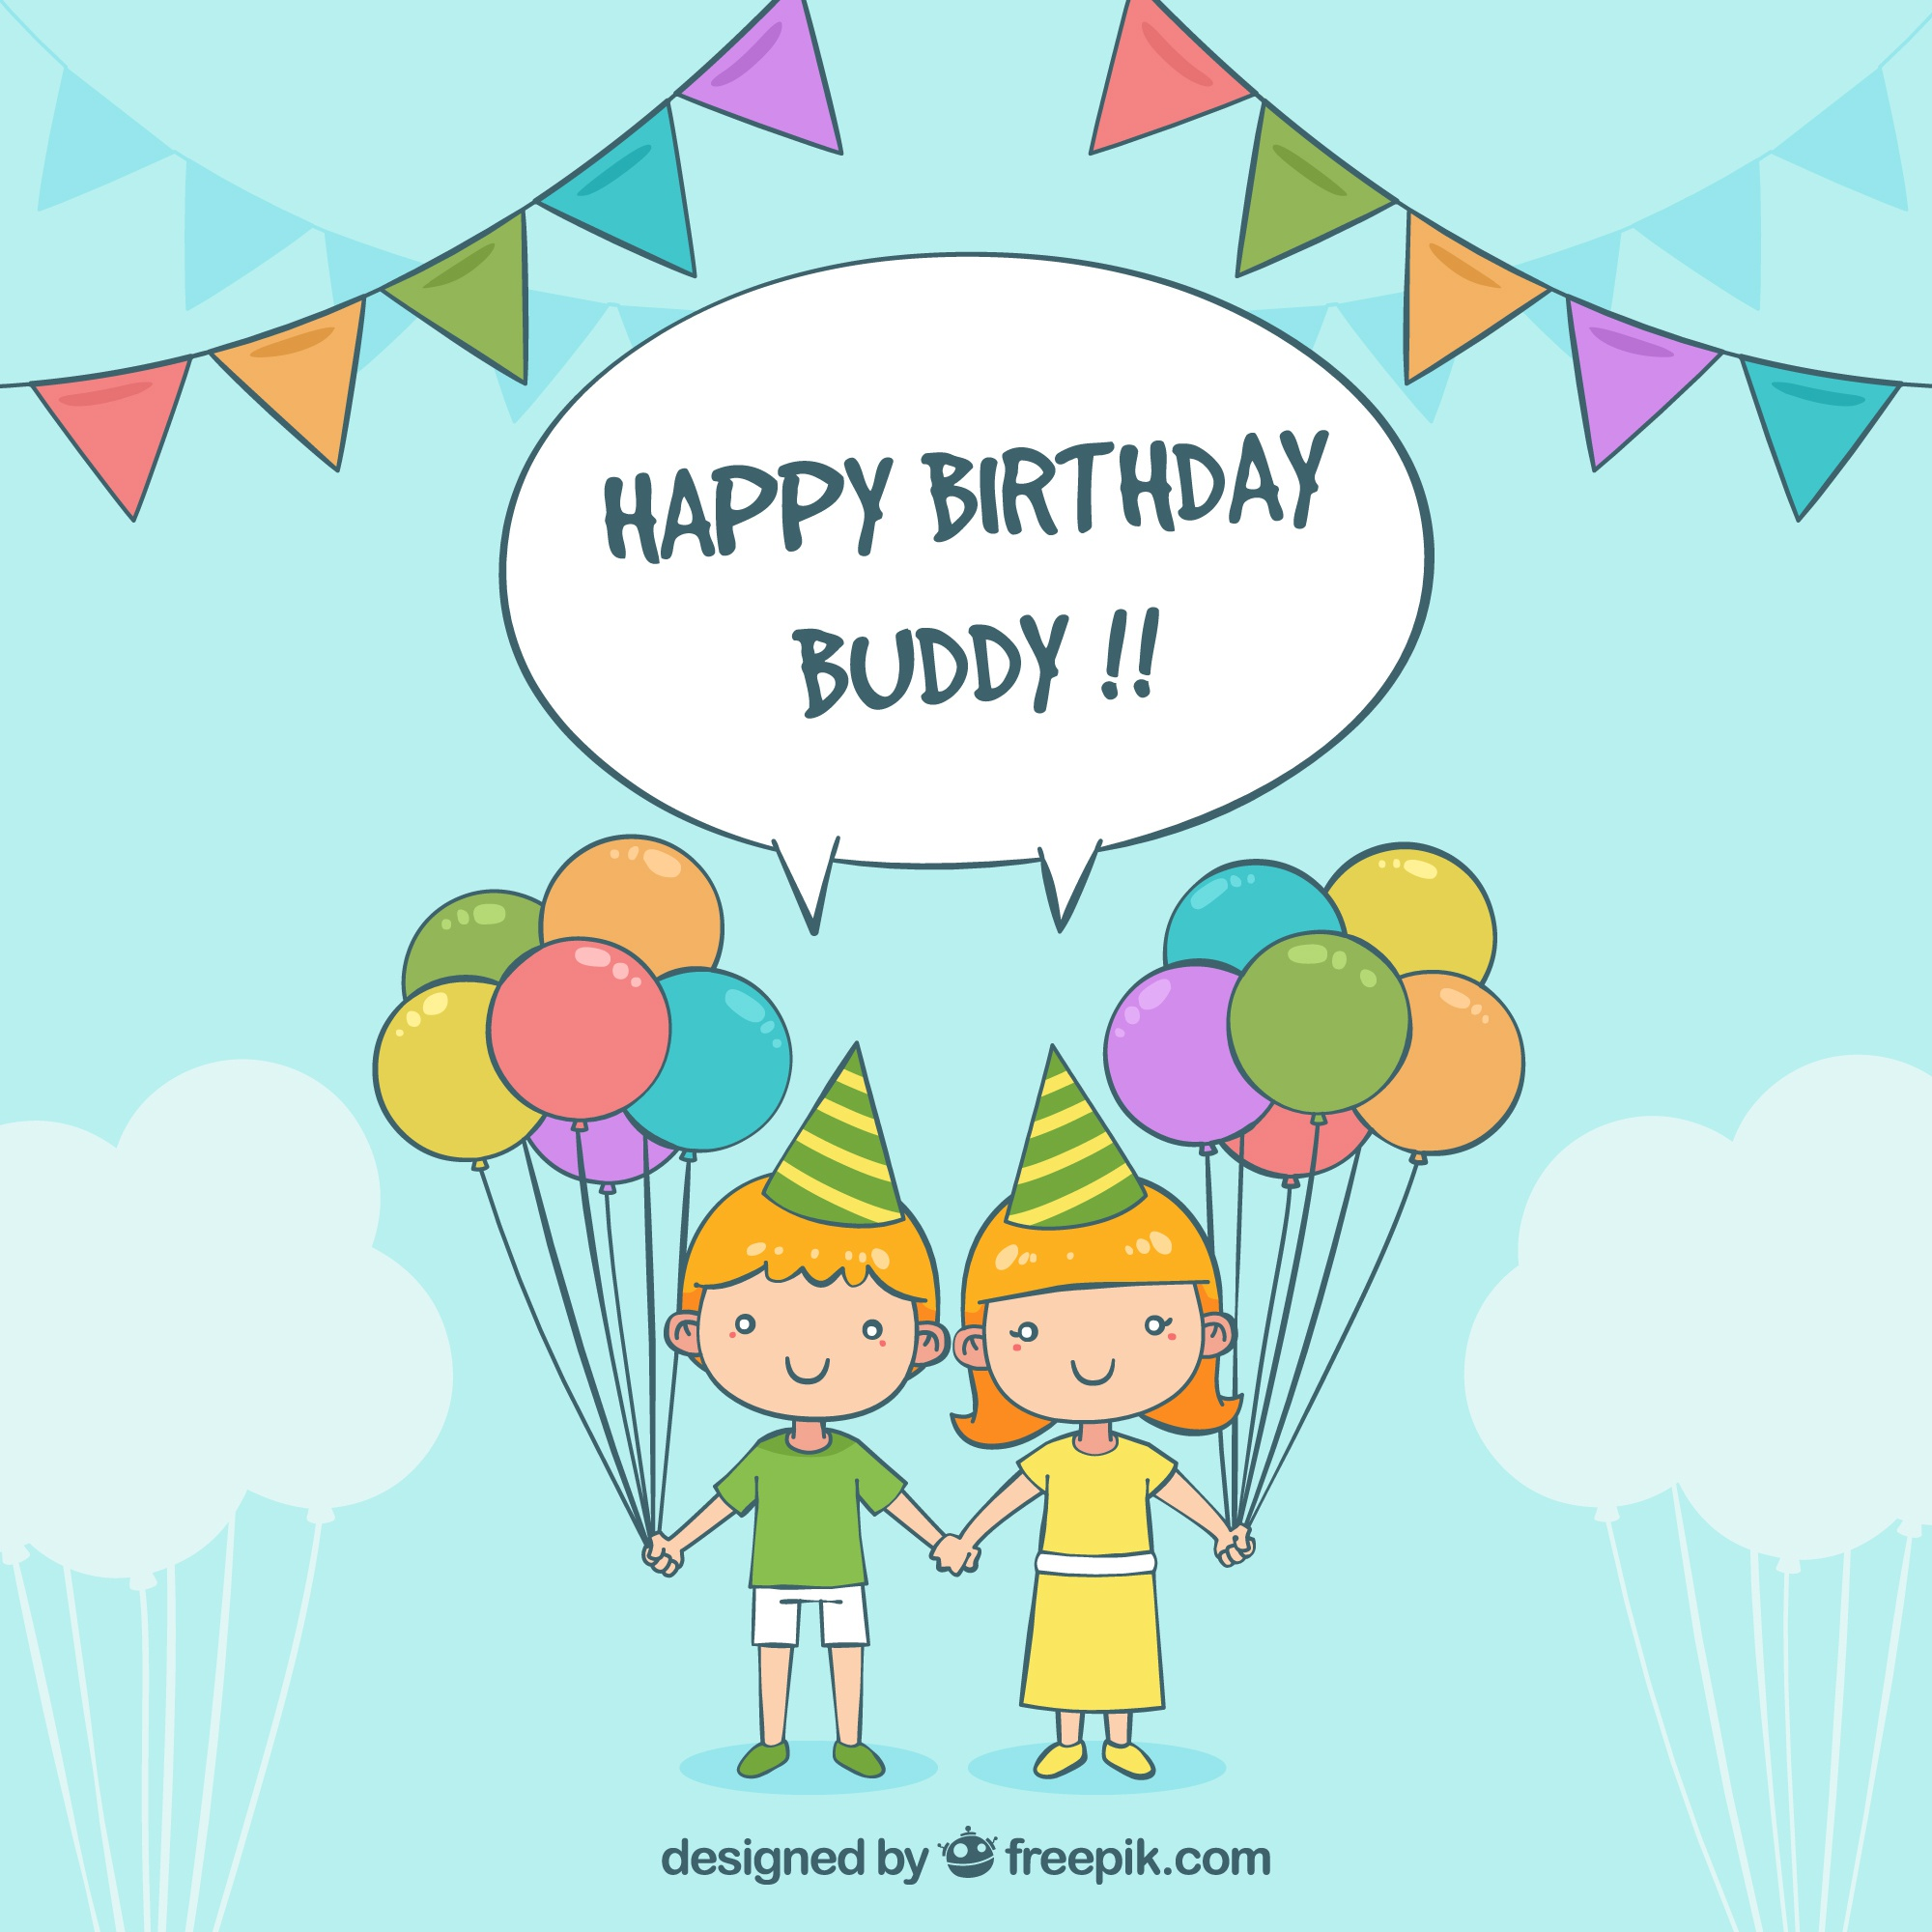 Background of children with birthday balloons